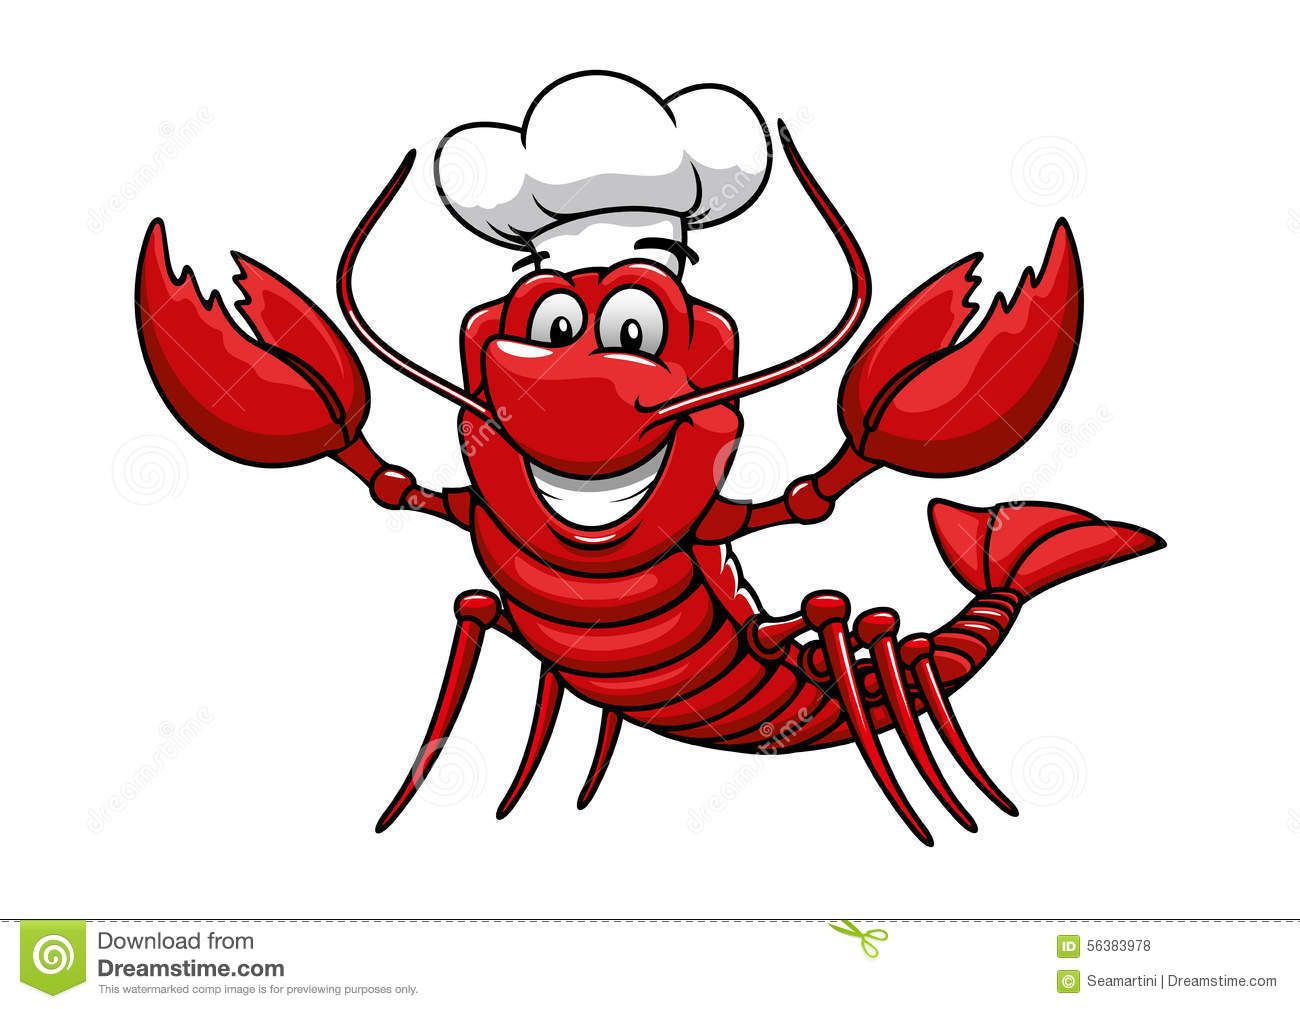 Illustration about Happy cartoon red lobster chef mascot